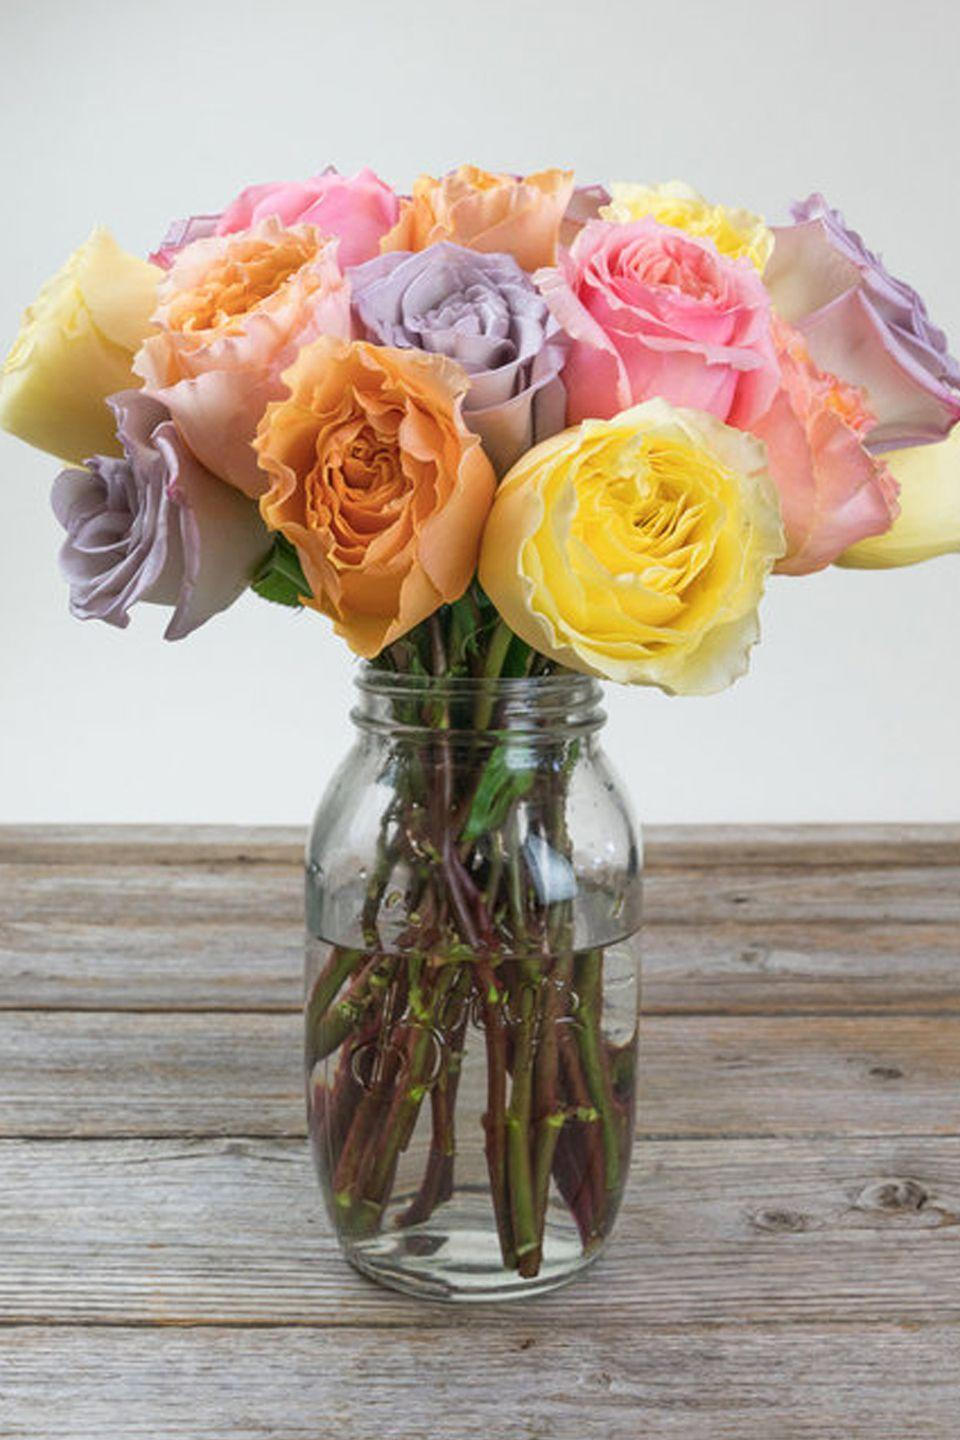 """<p>If you prefer to buy your display, this arrangement of yellow, peach, pink, and lavender roses will blend perfectly with the pastel hues commonly found on this holiday.<strong><em><br></em></strong></p><p><strong><em>LSA International Glass Vase Trio, $45</em></strong> <a class=""""link rapid-noclick-resp"""" href=""""https://go.redirectingat.com?id=74968X1596630&url=https%3A%2F%2Fwww.westelm.com%2Fproducts%2Ftotem-colored-glass-vases-d5977%2F&sref=https%3A%2F%2Fwww.housebeautiful.com%2Fentertaining%2Fflower-arrangements%2Fg19409803%2Feaster-flower-arrangements%2F"""" rel=""""nofollow noopener"""" target=""""_blank"""" data-ylk=""""slk:BUY NOW"""">BUY NOW</a></p>"""